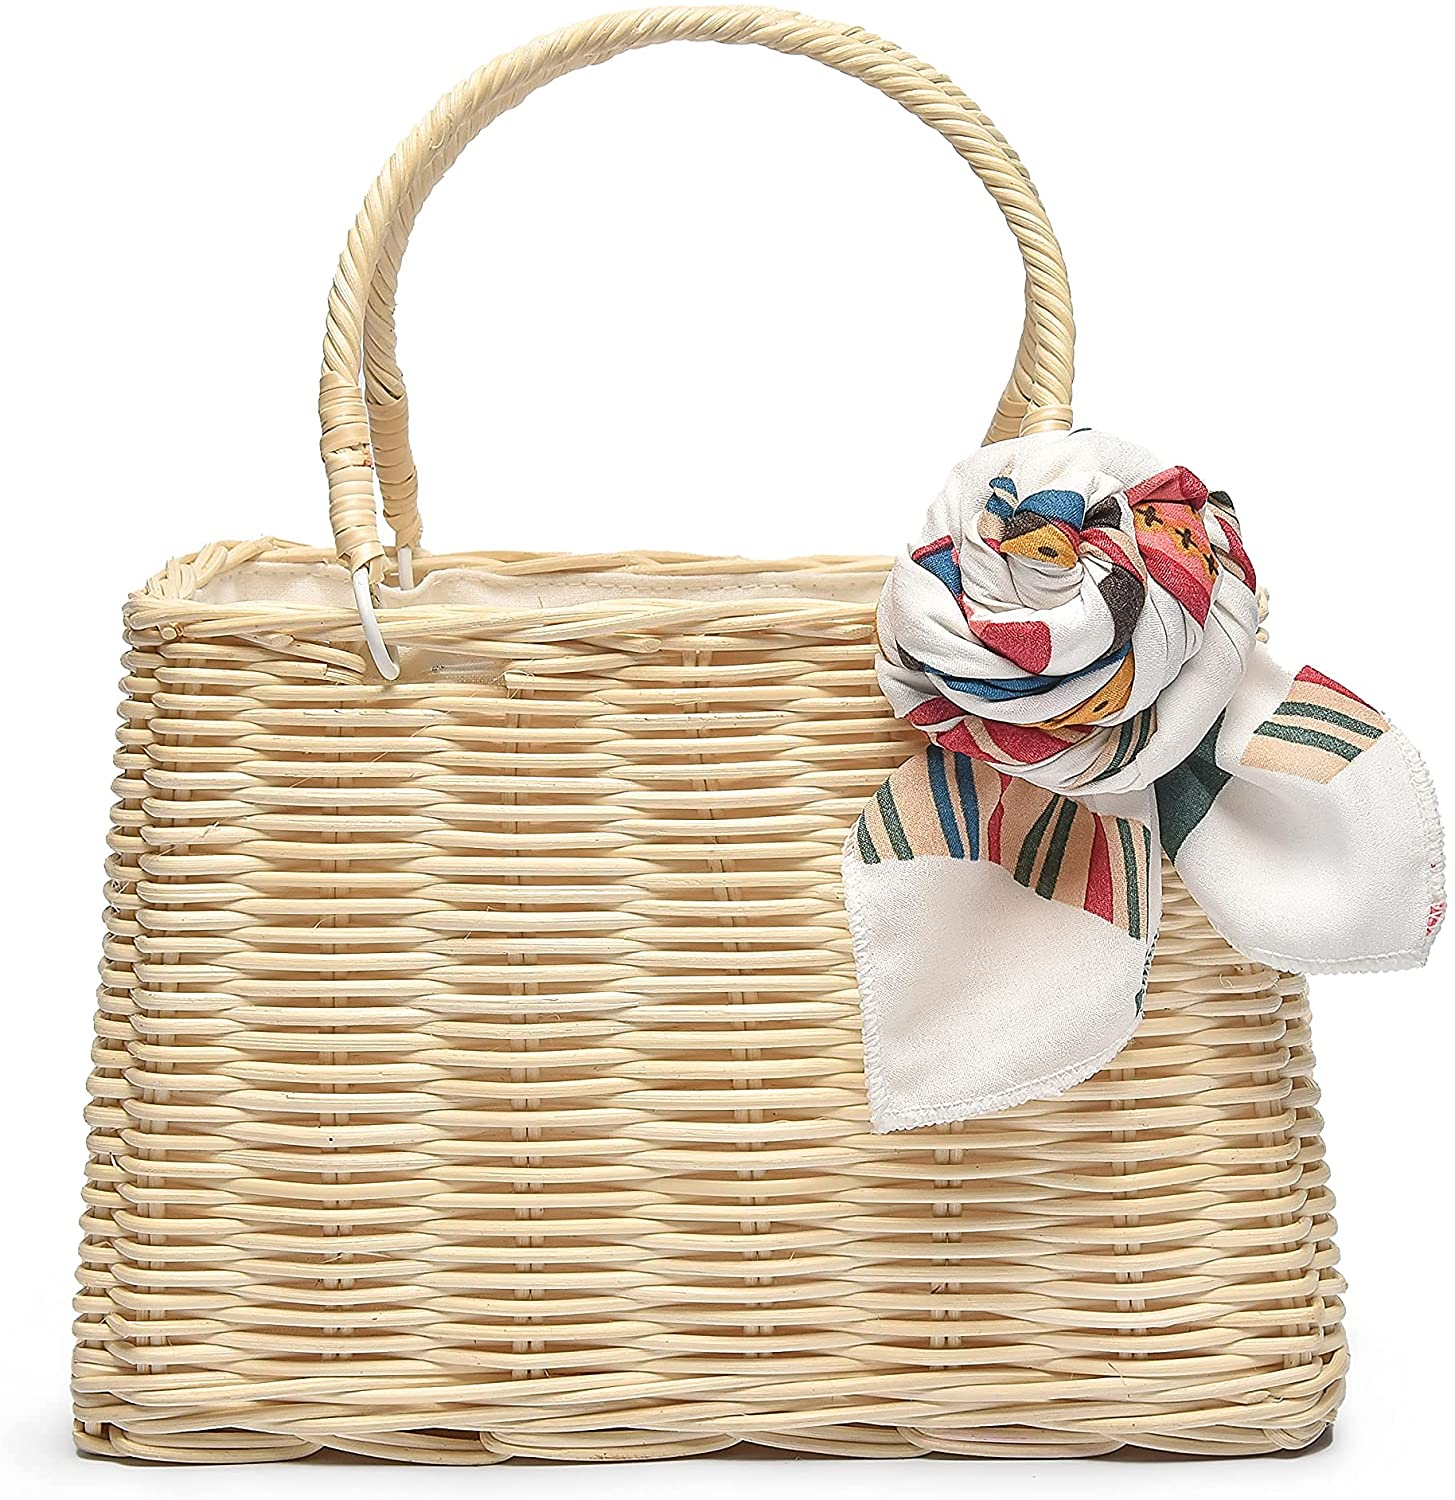 AnnBryan Designer Rattan Handbags for Pu We OFFer at cheap prices Animer and price revision Handmade Women Artisan